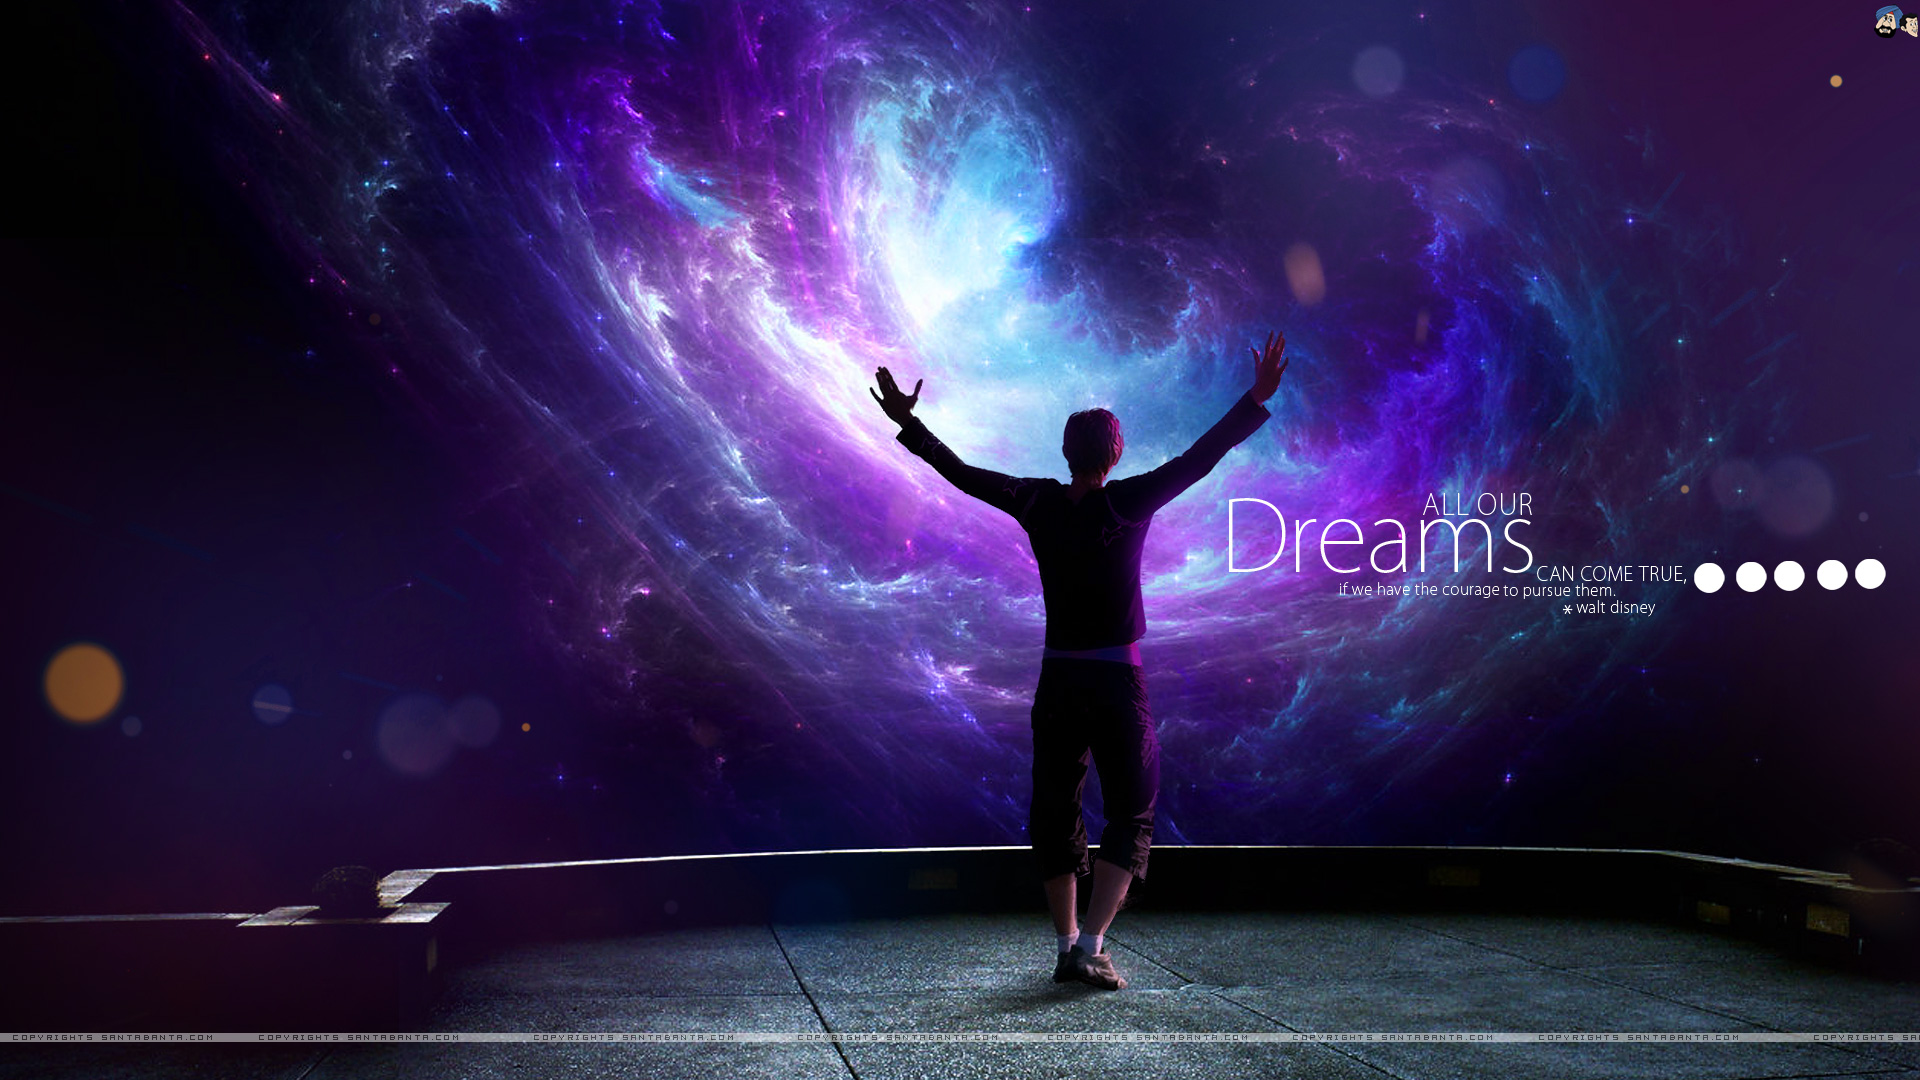 20 Hand Picked Inspirational Wallpapers Hd Edition Stugon